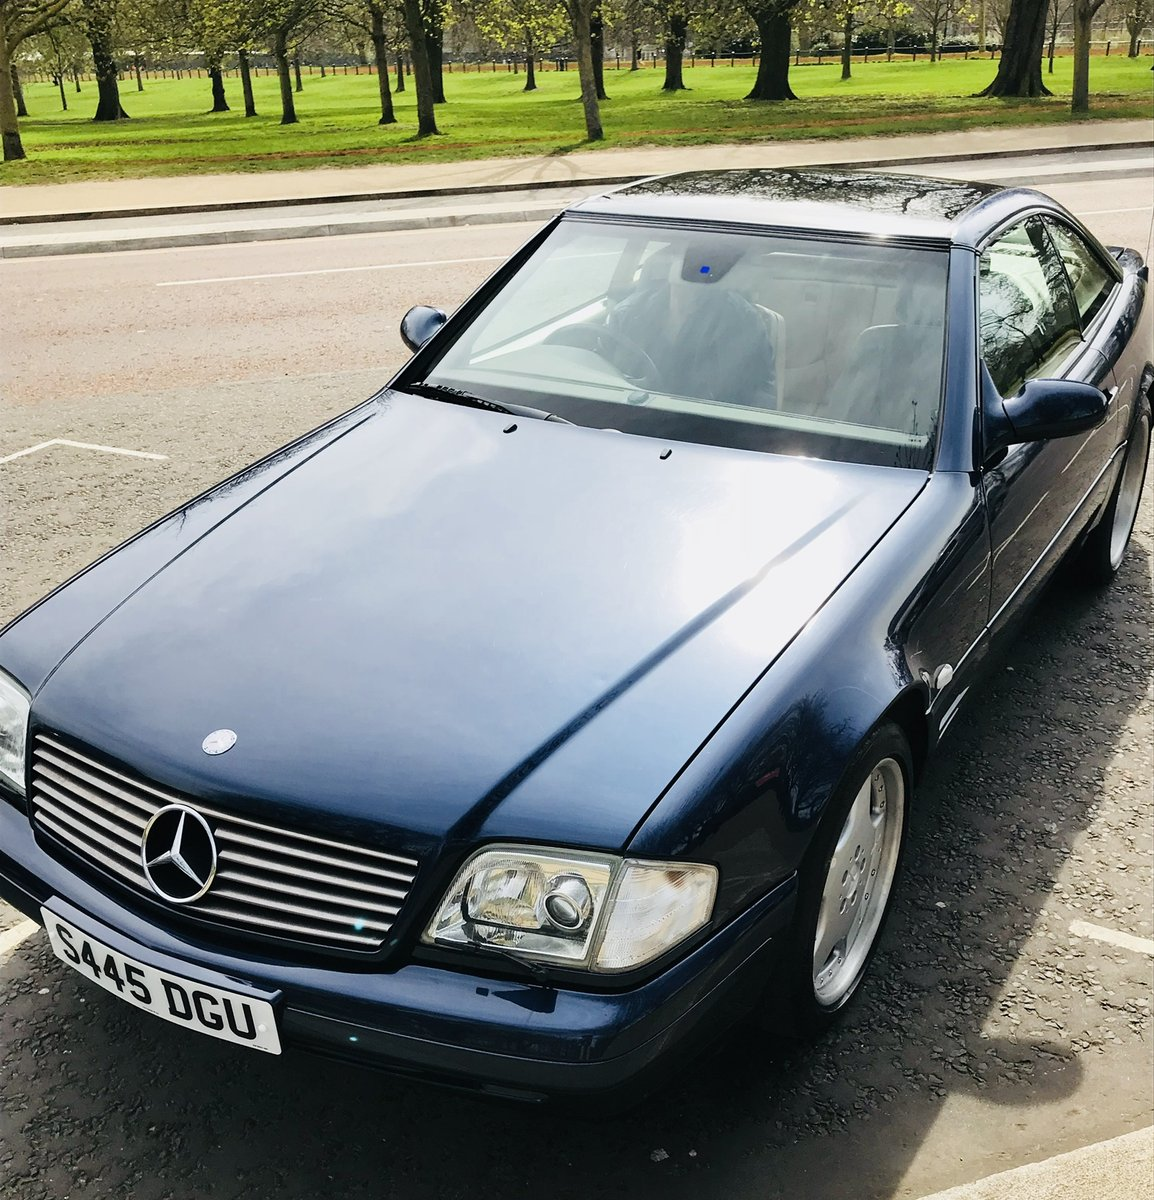 1998 Mercedes SL320, Low Mileage, Fantastic Condition For Sale (picture 1 of 6)